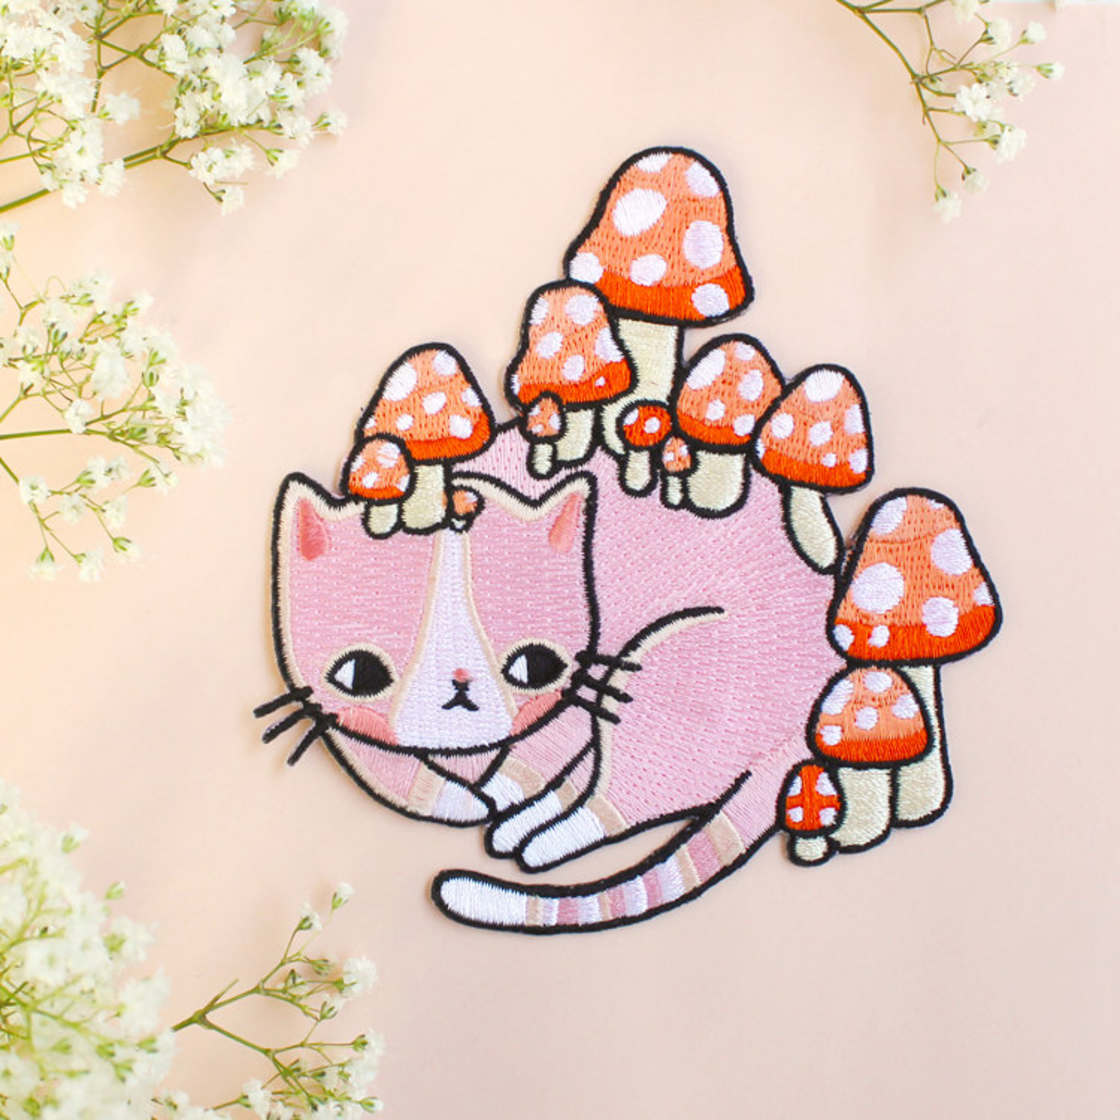 The adorable pins by Pony People (16 pics)